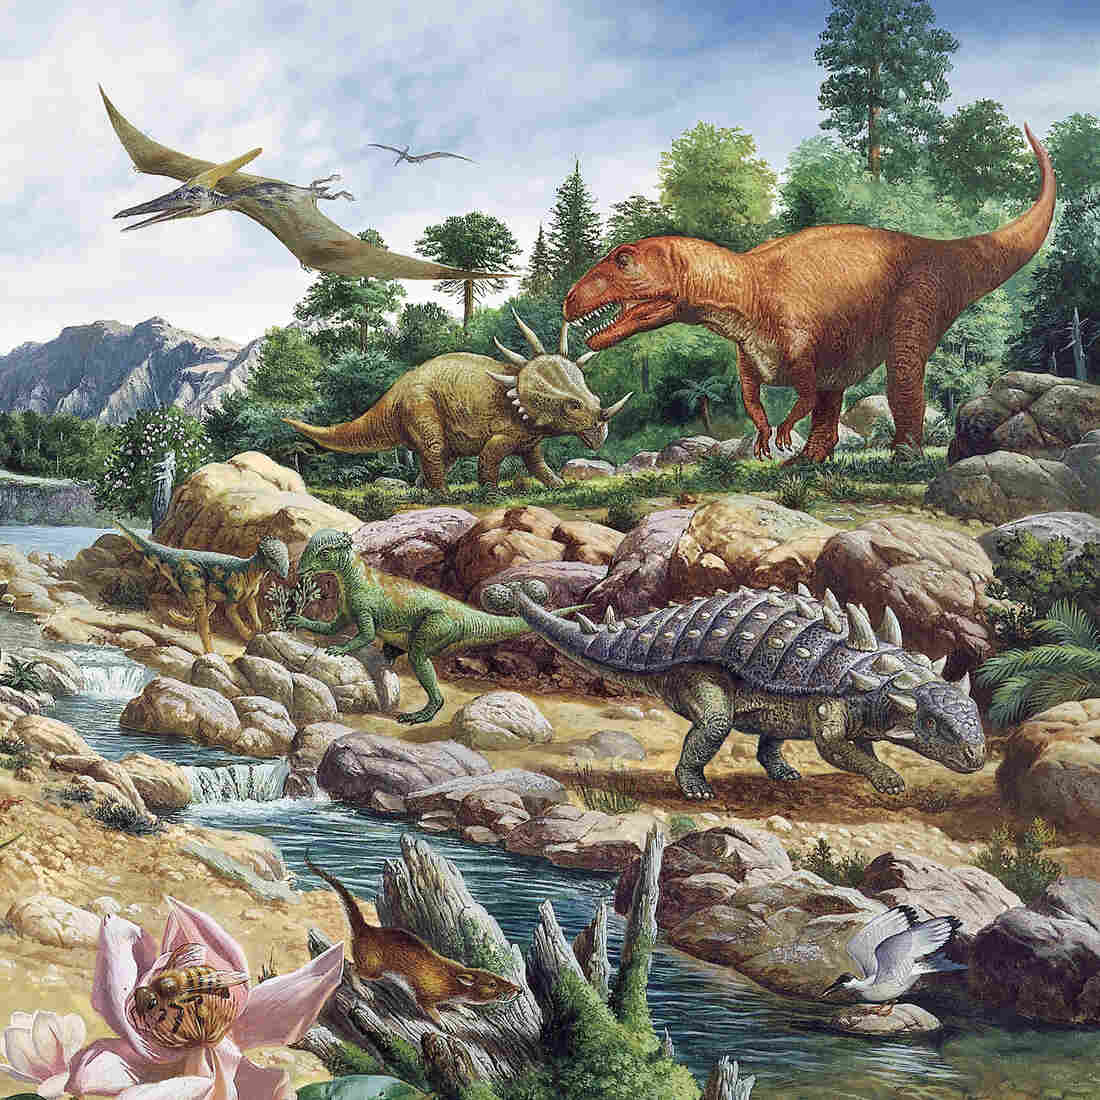 Maybe Dinosaurs Were A Coldblooded, Warmblooded Mix